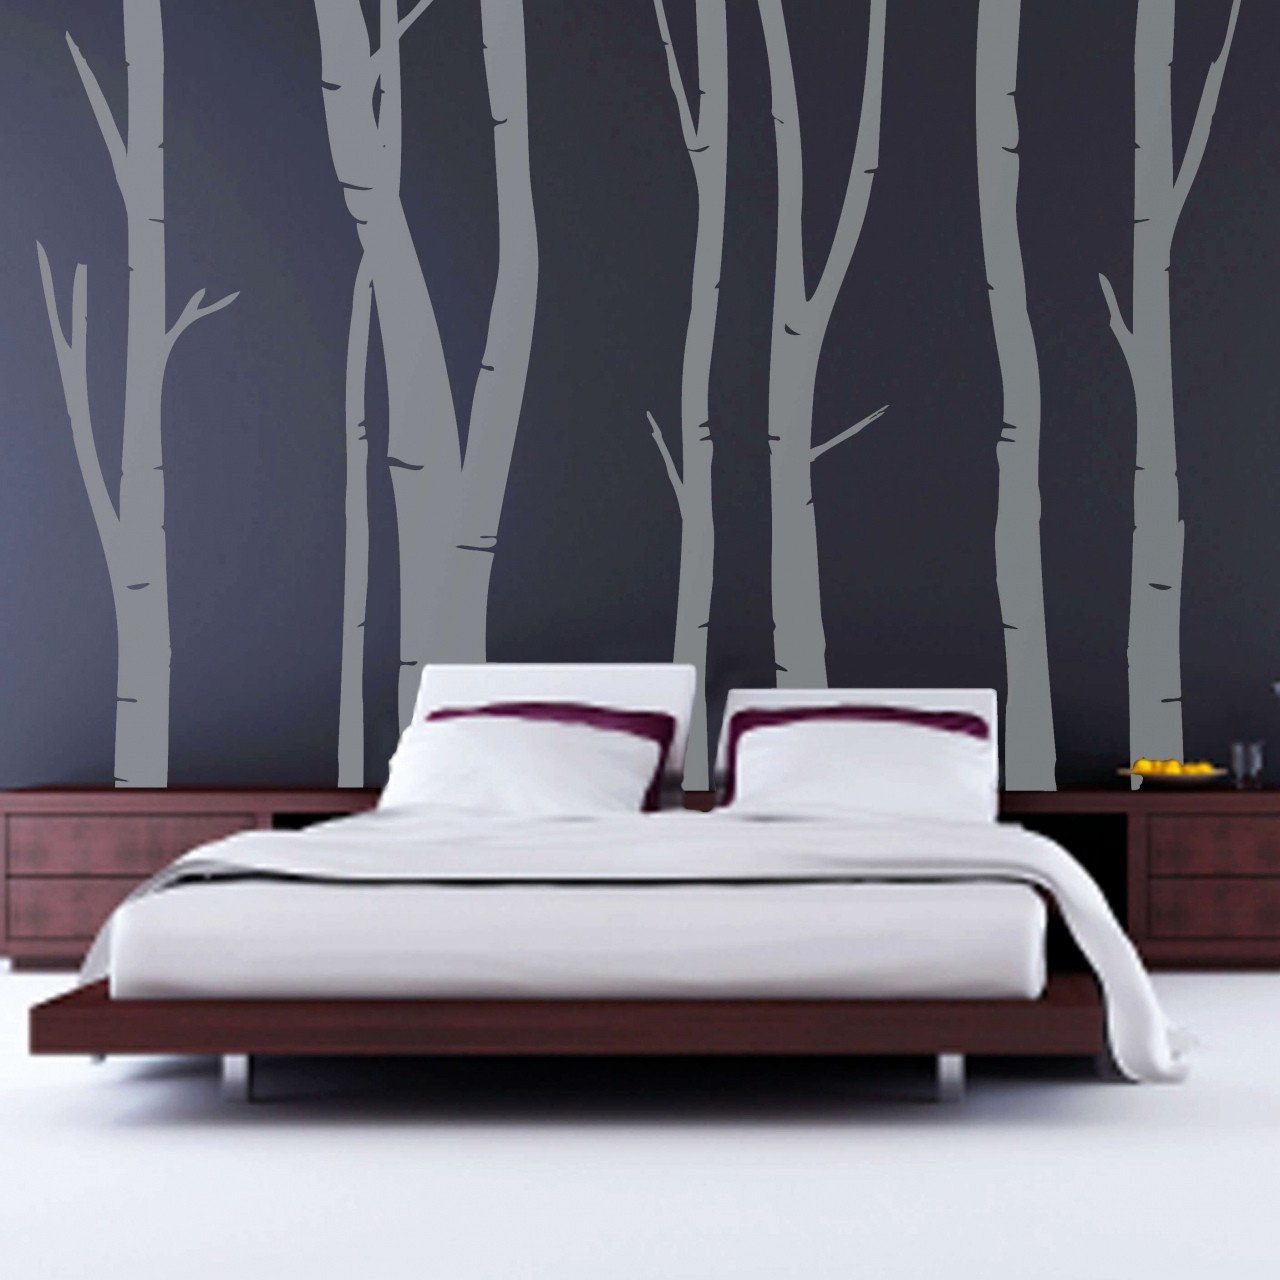 Wall Decorating Ideas for Bedroom Luxury Bedroom Art Wall Decals for Bedroom Unique 1 Kirkland Wall